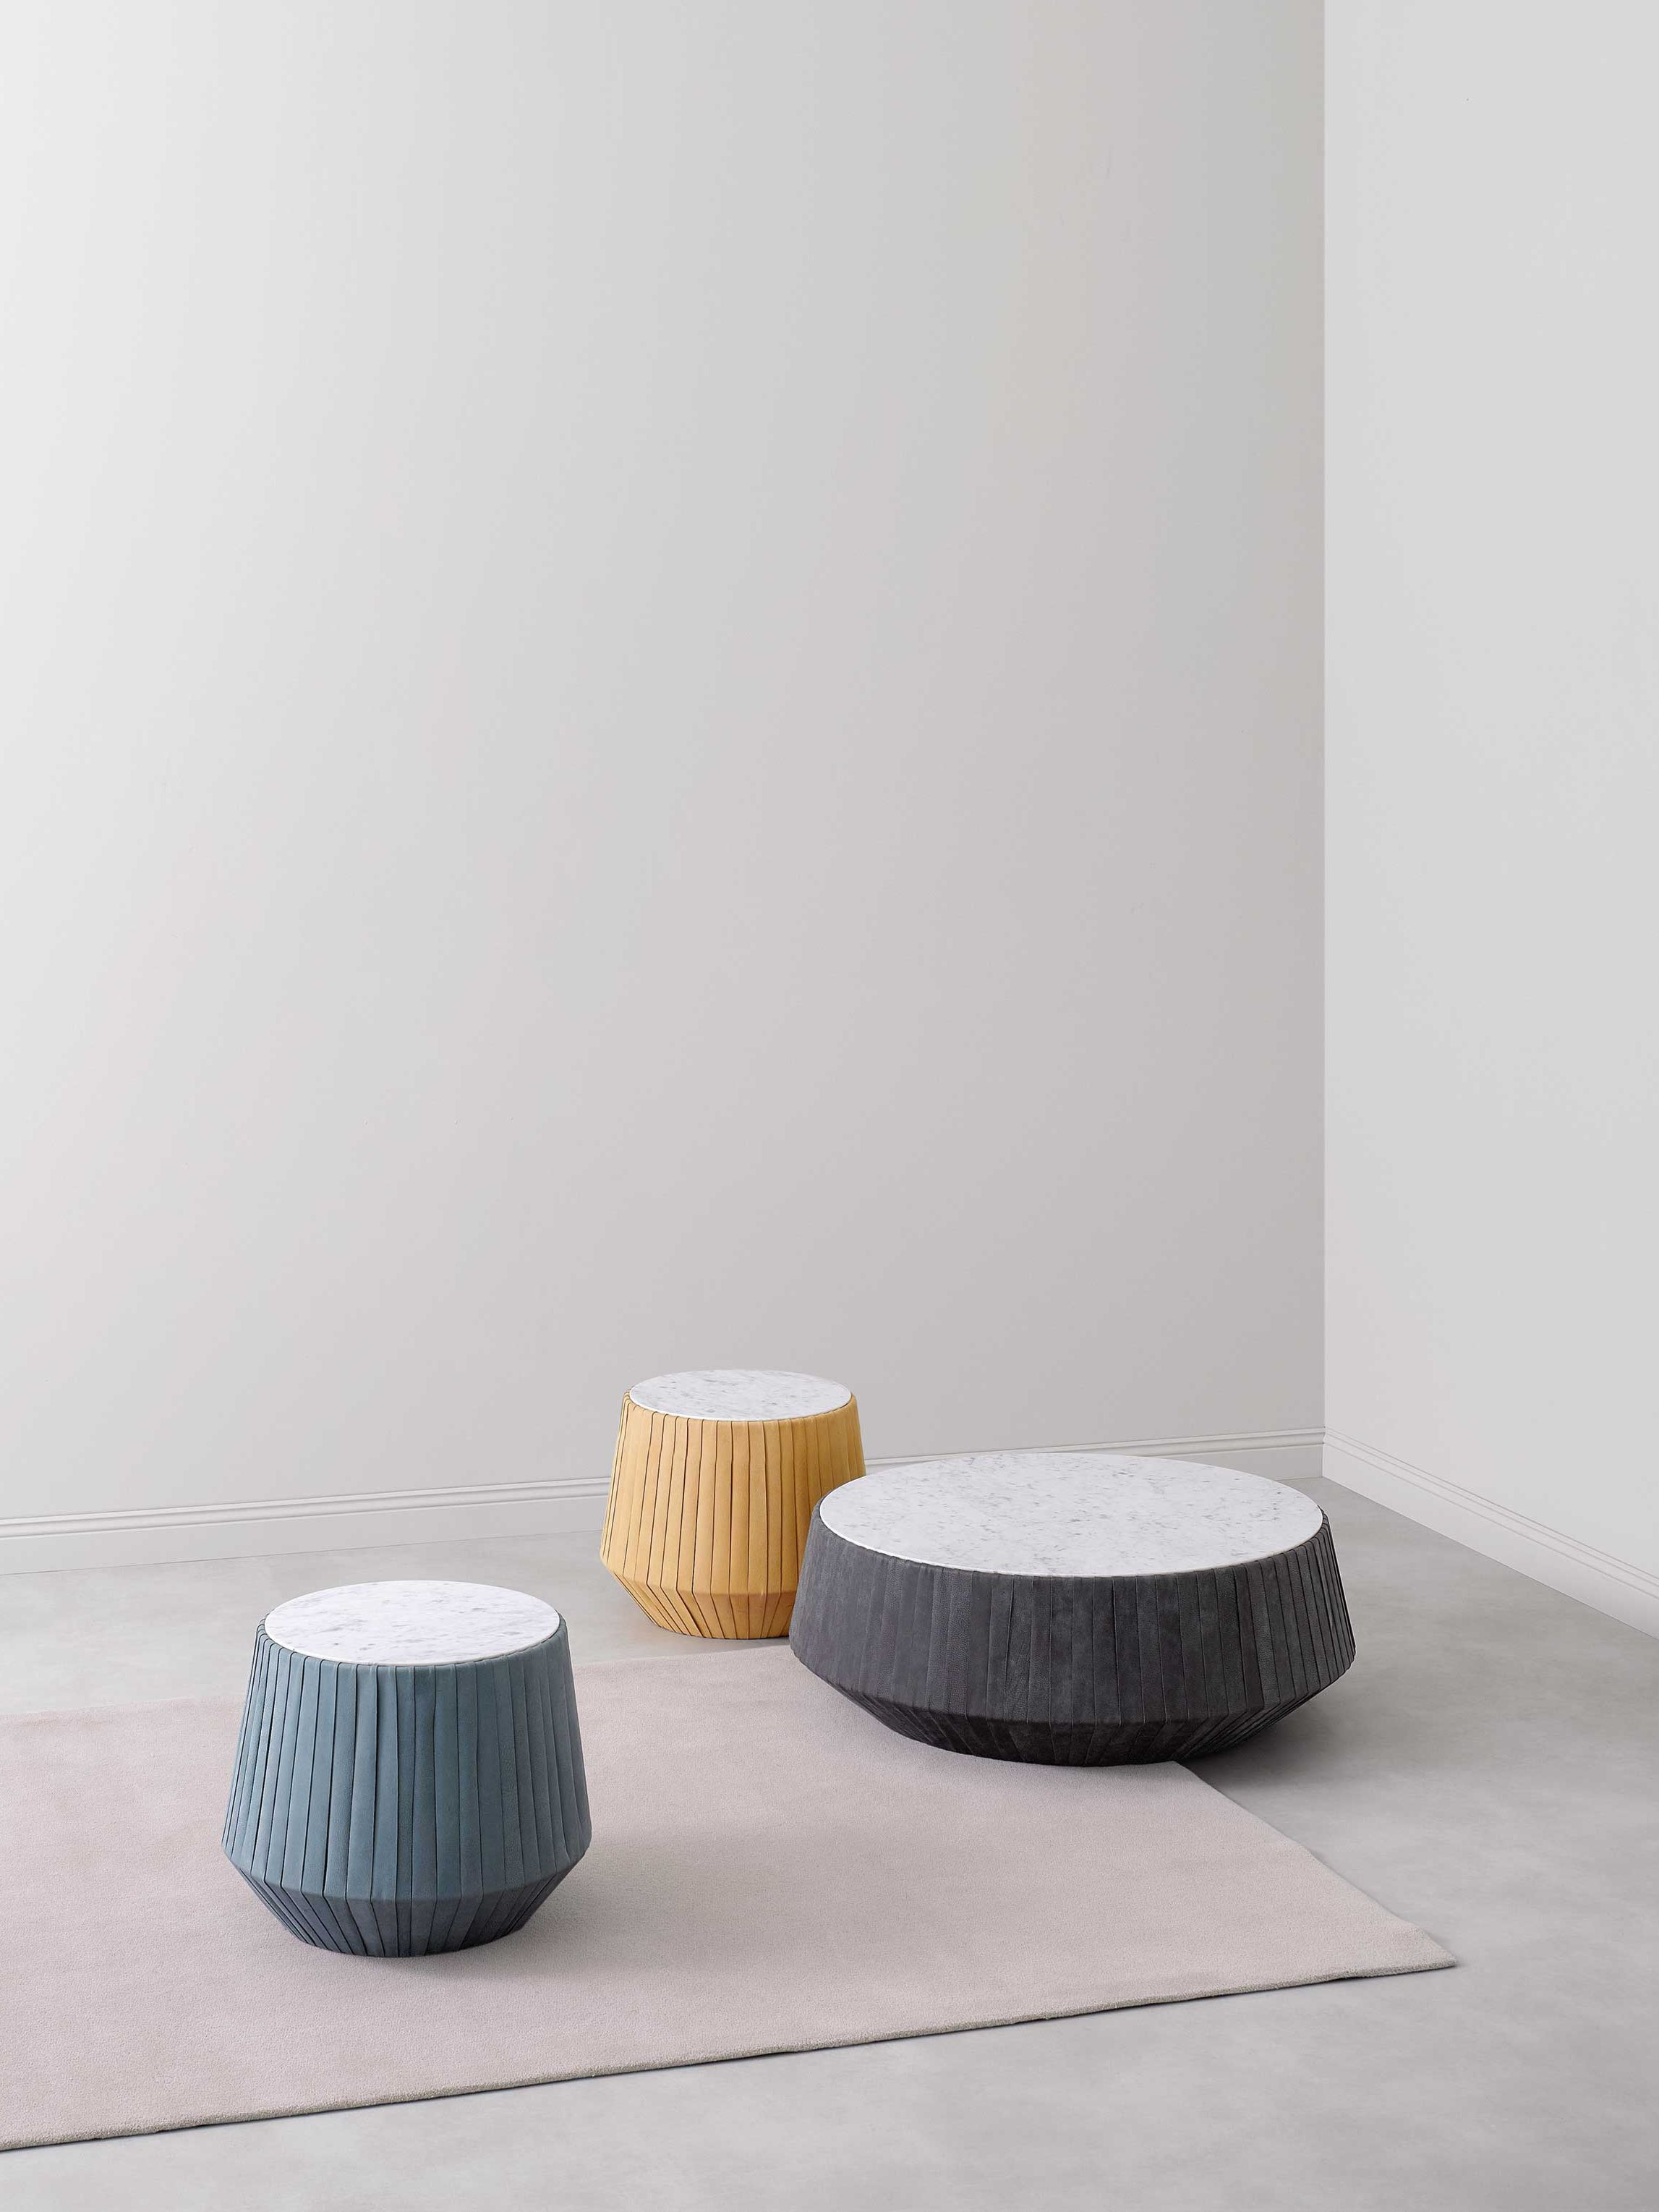 - Round Leather Coffee Table HOOP By Paola Zani Design Gianluca